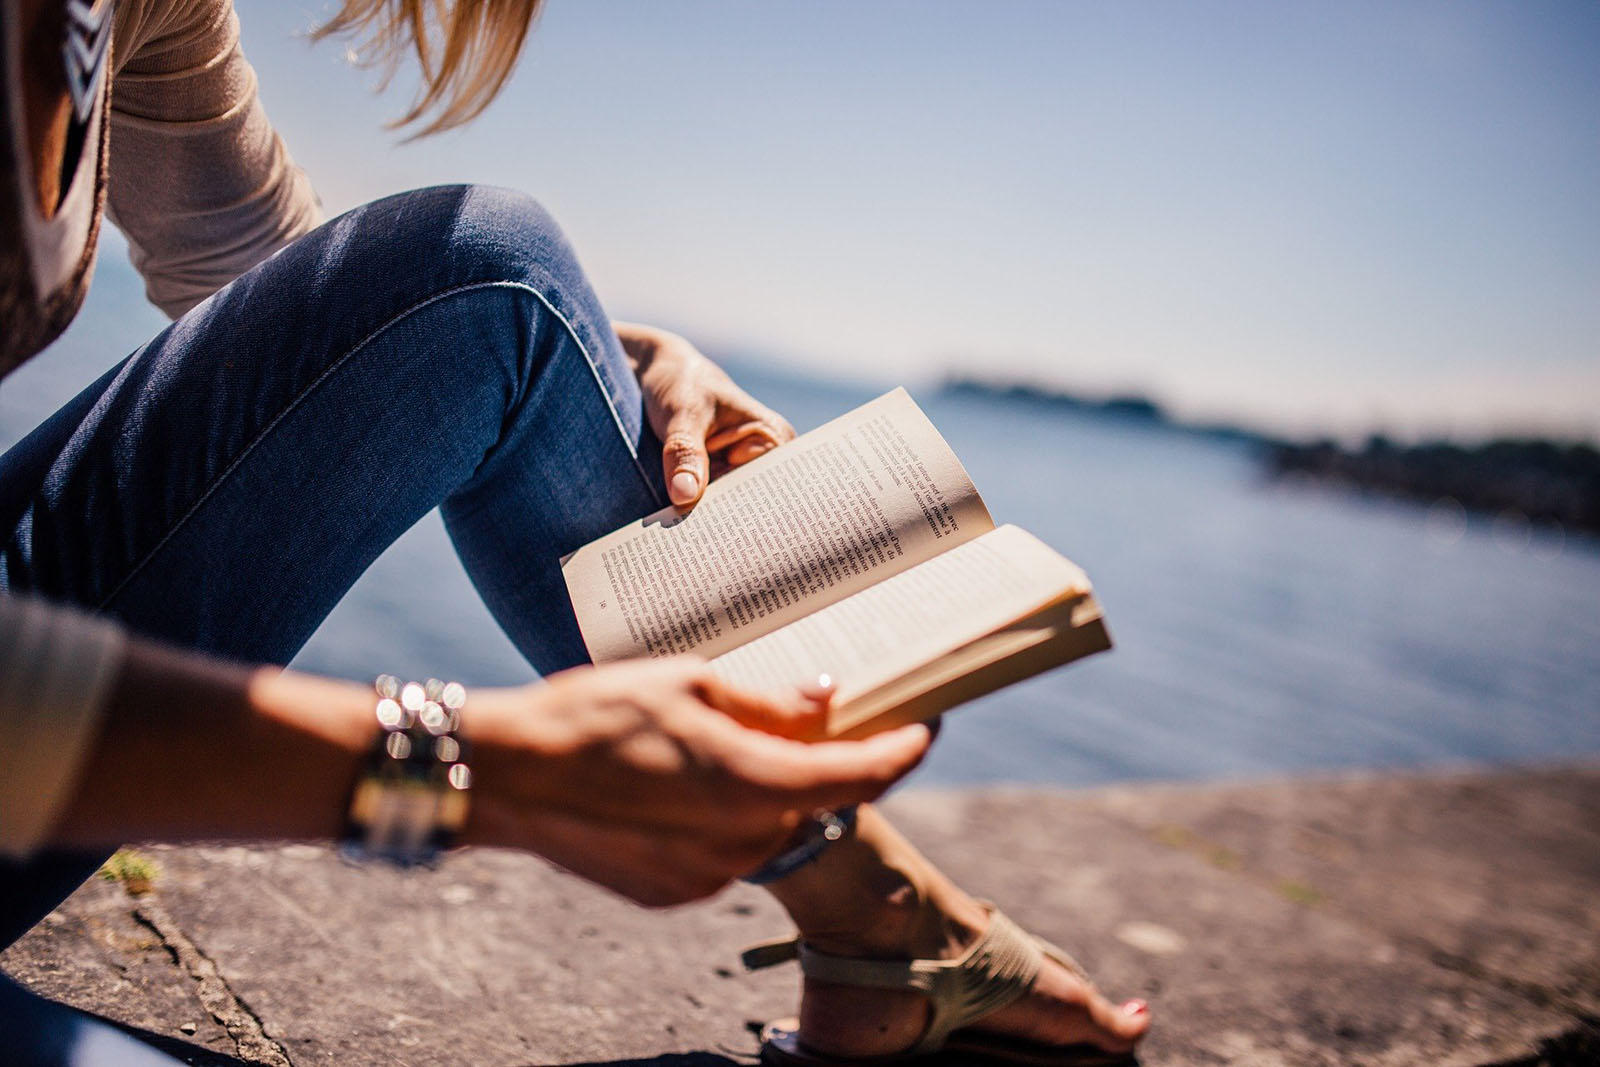 A woman reading a book on a beach.